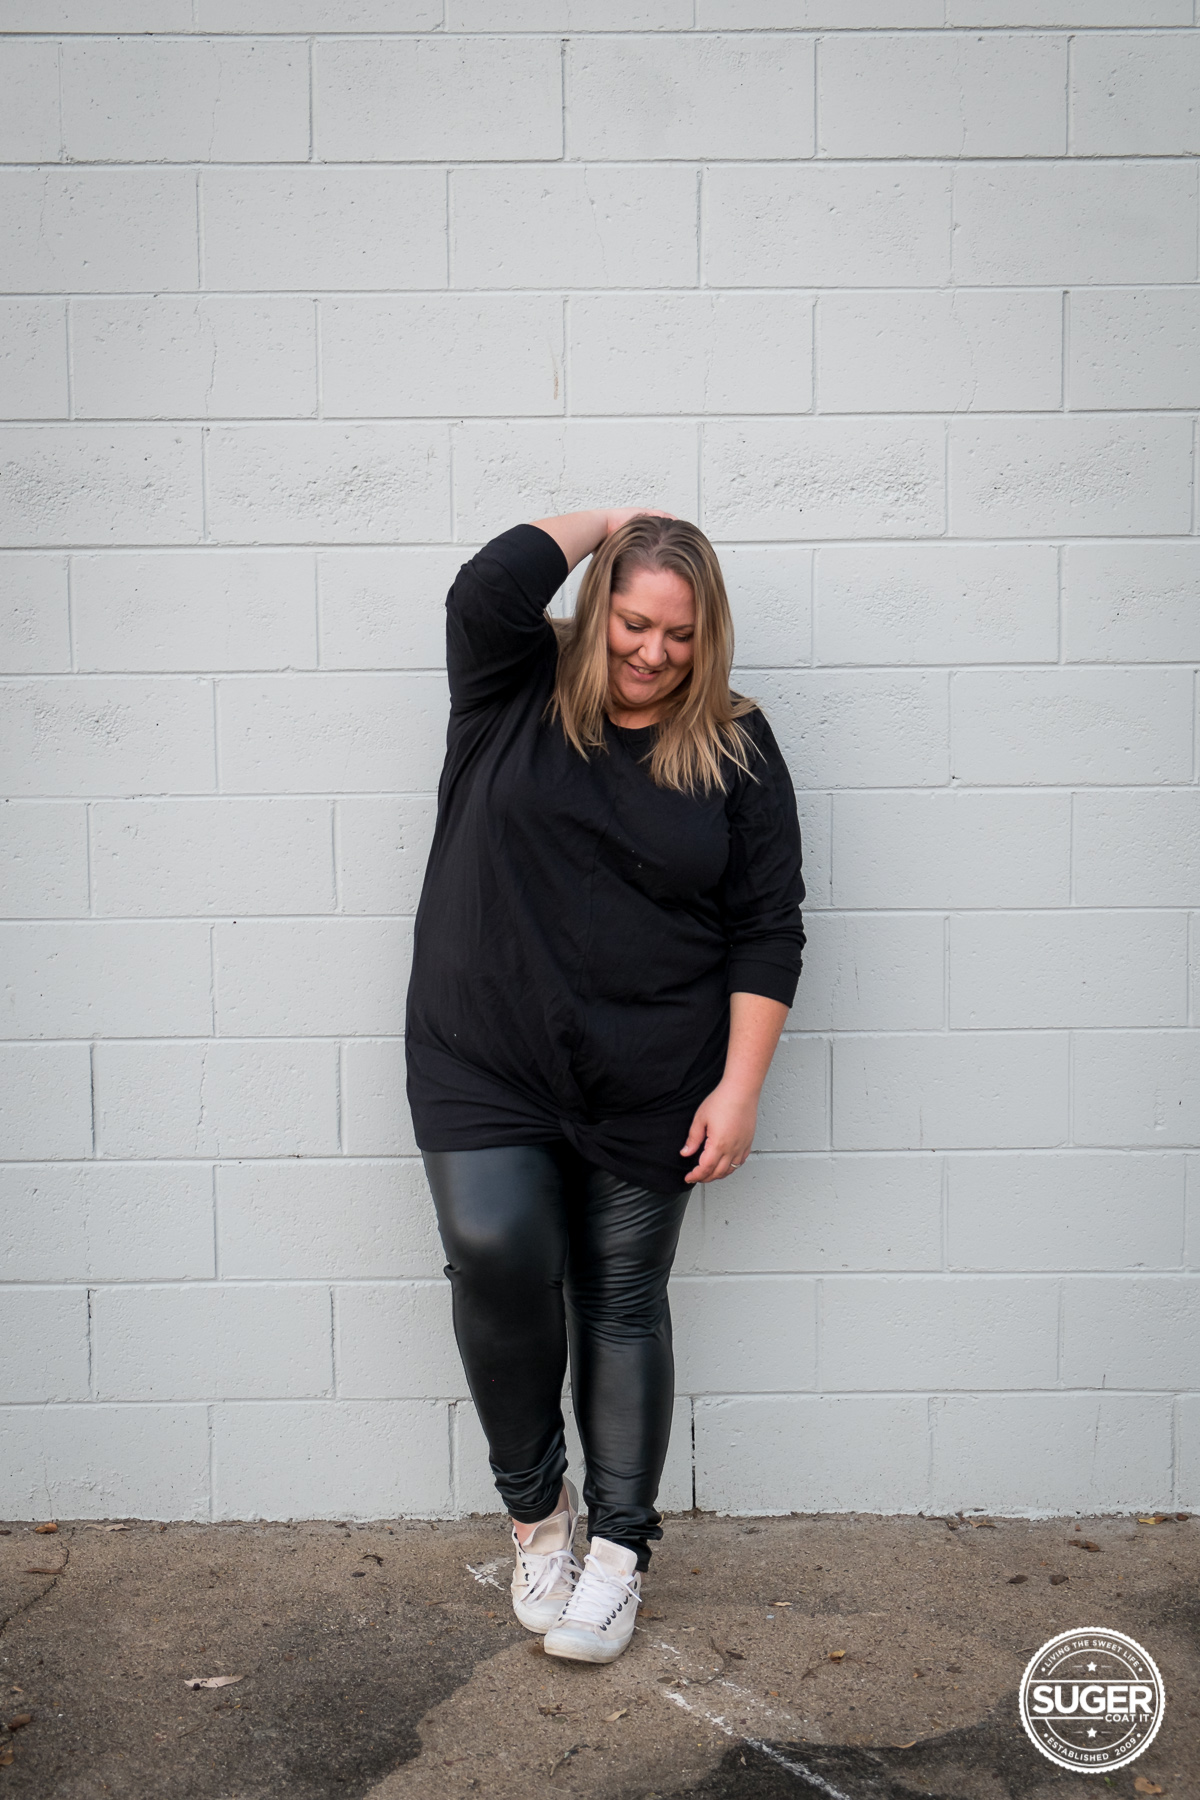 Slouchy Sporty Casual Outfit for Winter | www.sugercoatit.com